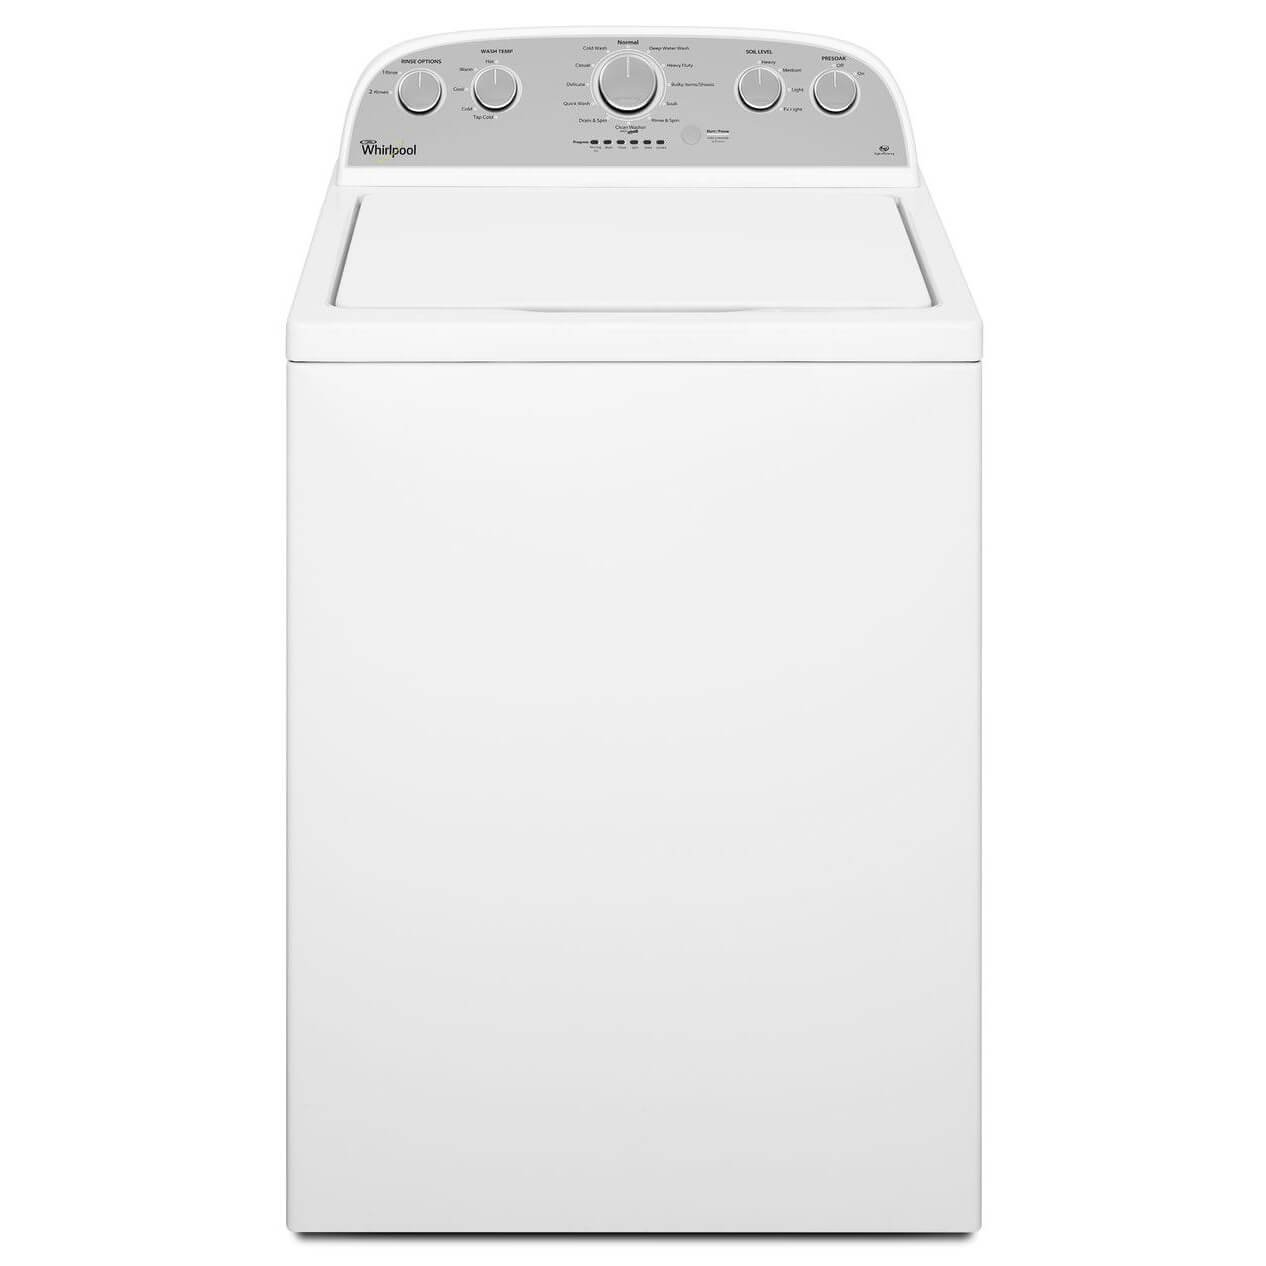 Whirlpool WTW4915EW 3.7 Cu. Ft. Top Load Washing Machine with Energy Star Qualification, White